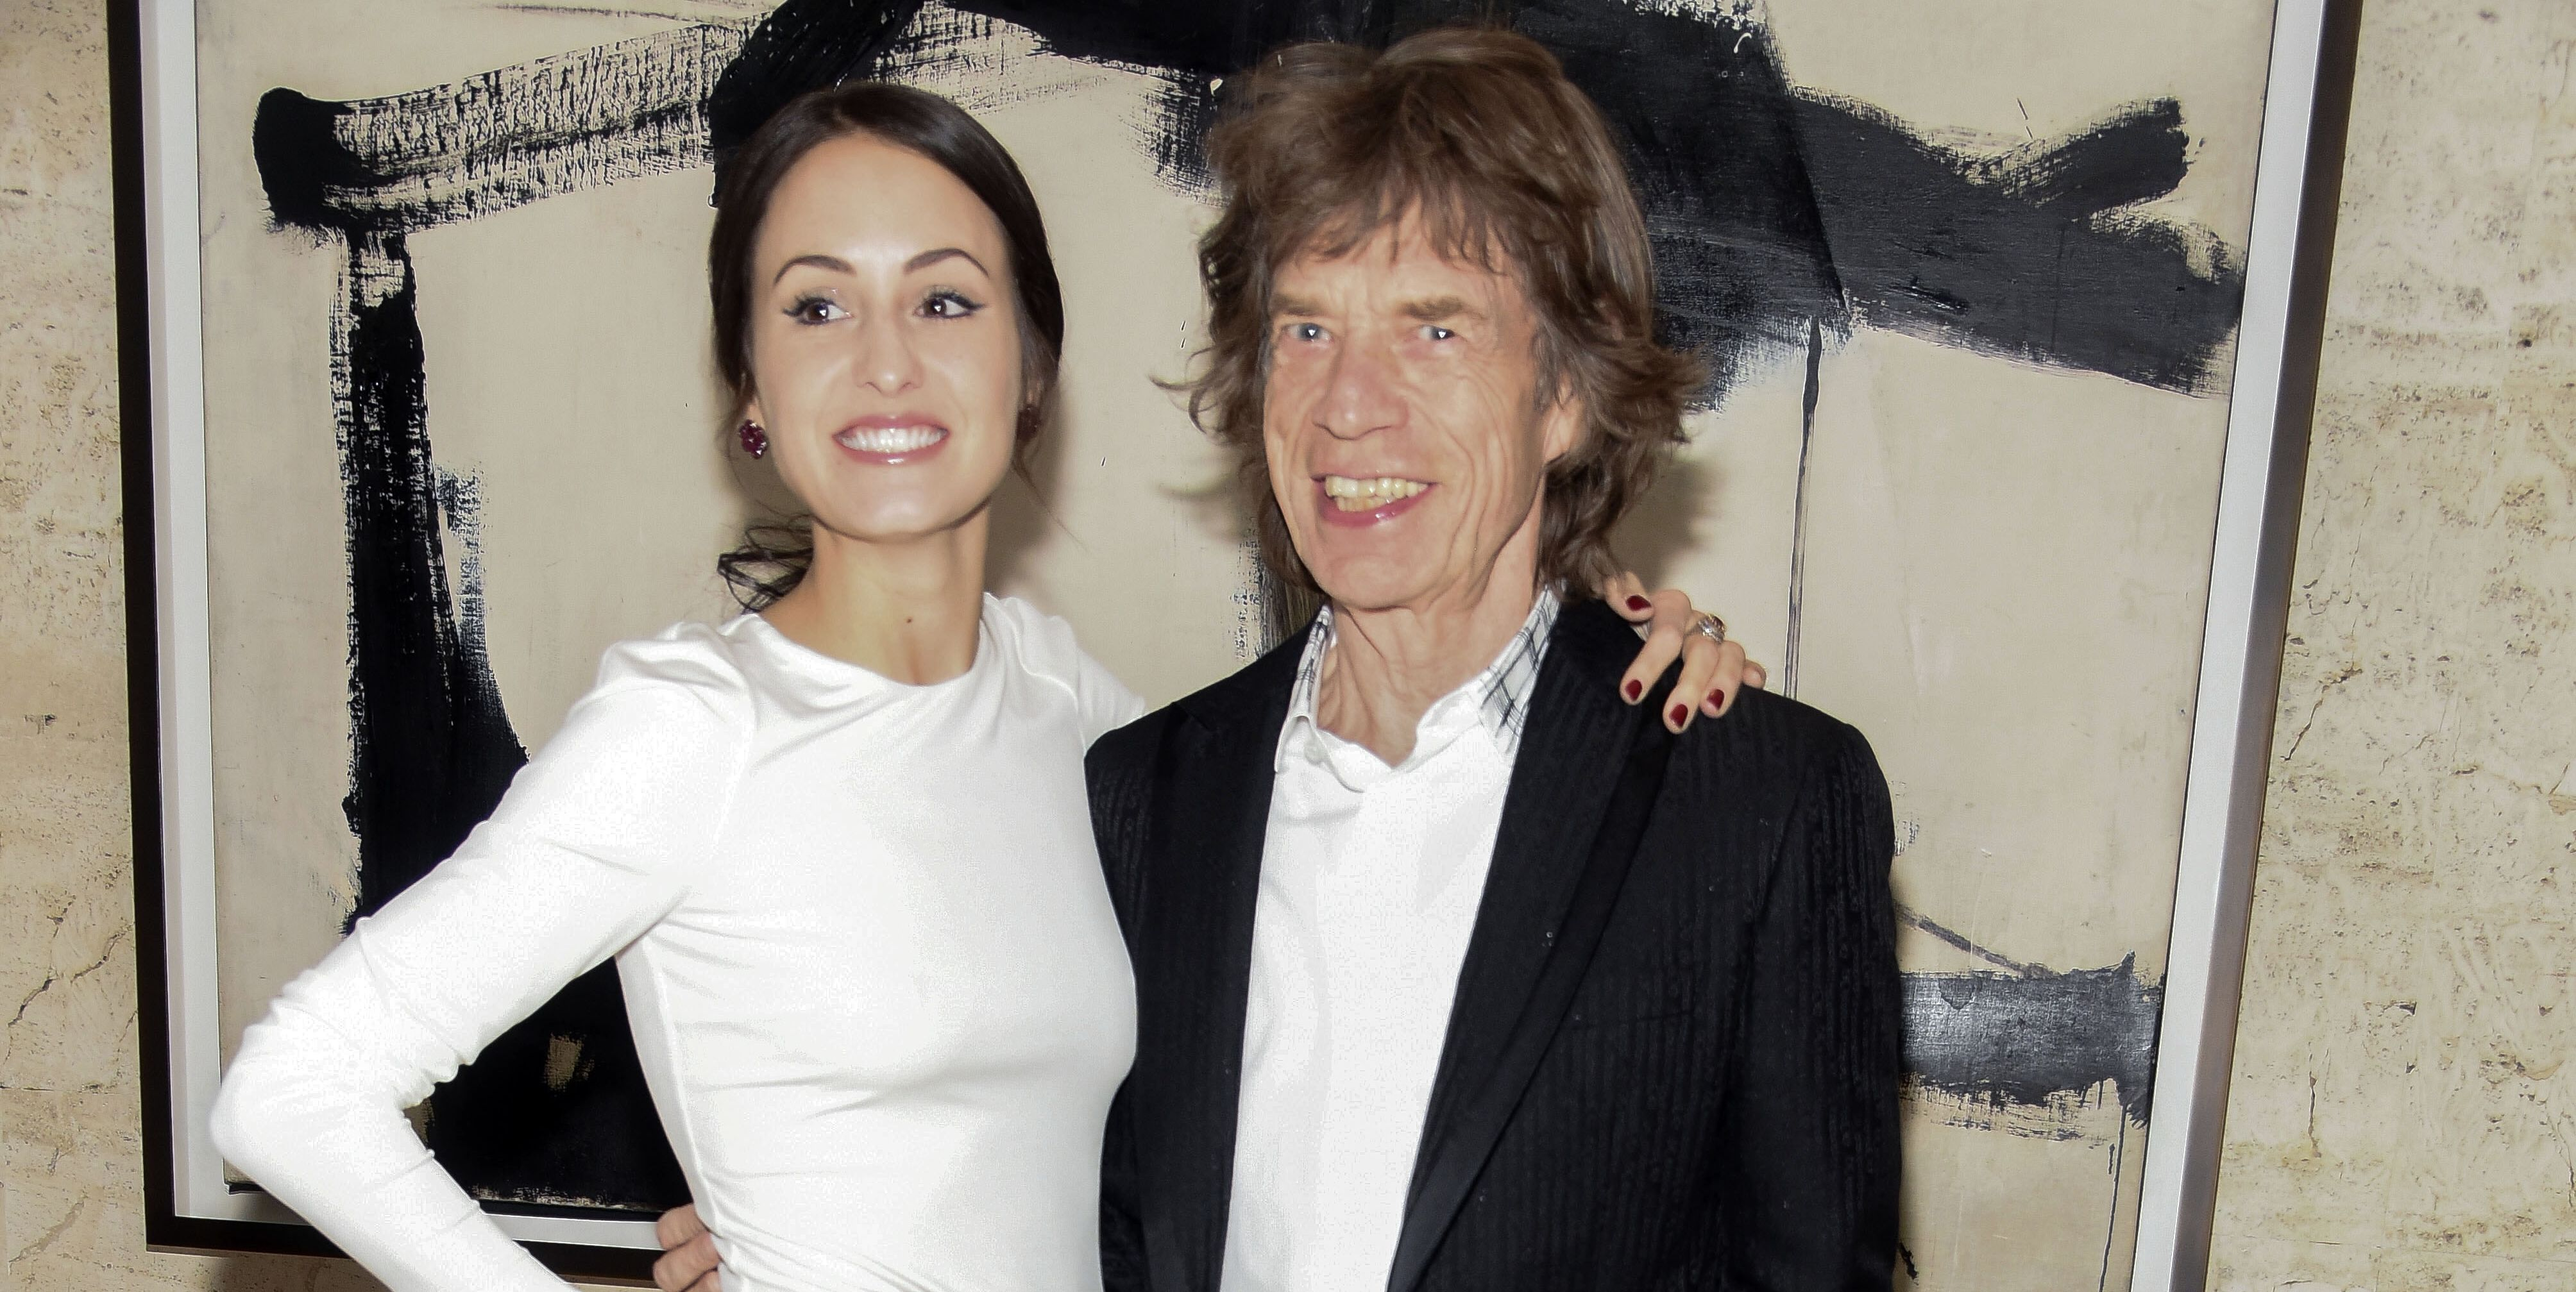 T Amp C Exclusive Interview With Mick Jagger And Melanie Hamrick The Singer And His Girlfriend On